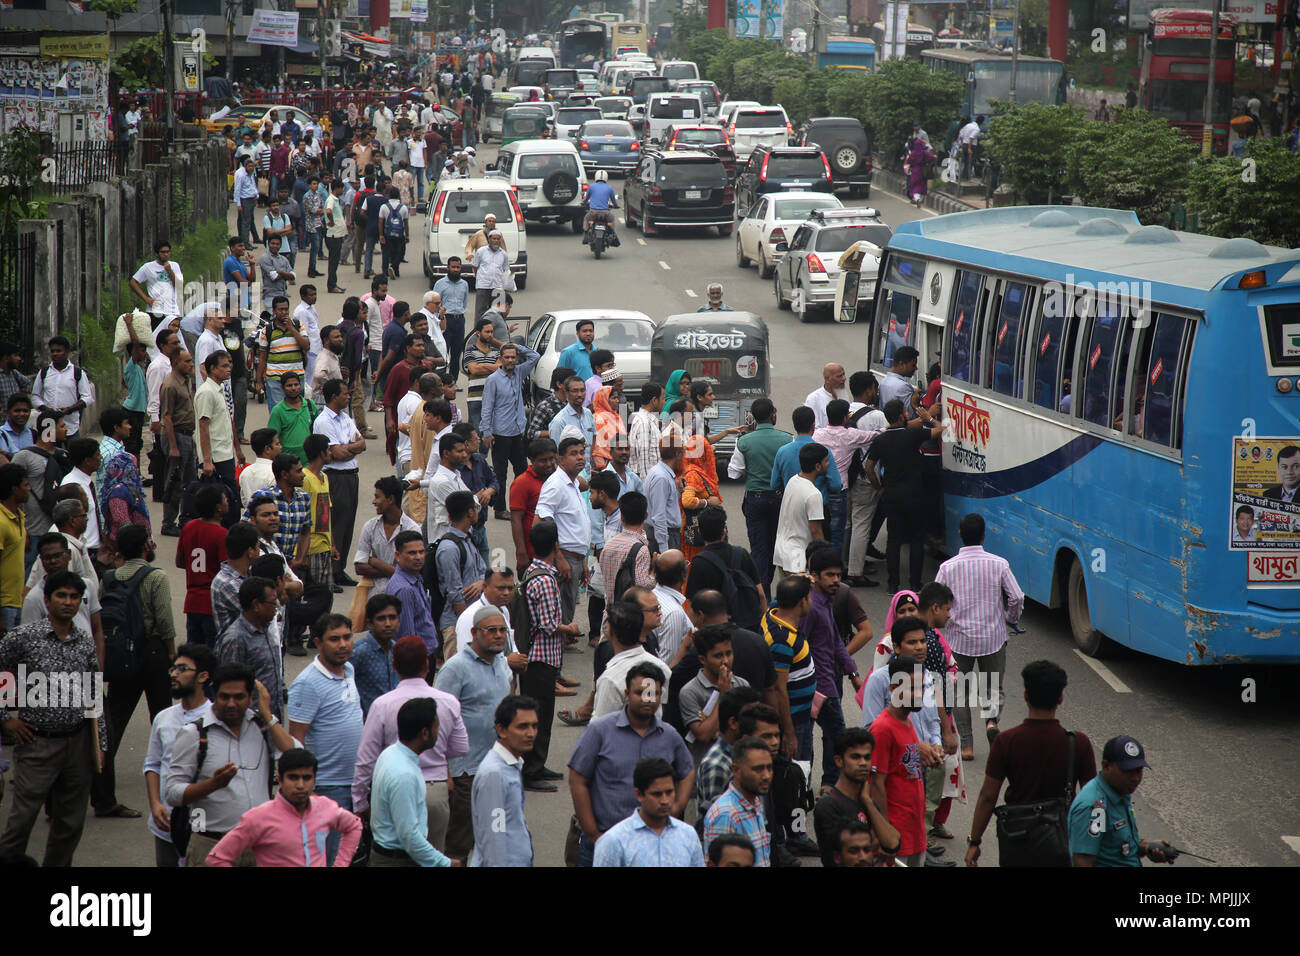 Dhaka, Bangladesh. Residents wait for public transports to go home during the Ramadan in Dhaka, Bangladesh on May 23, 2018.  Last 10 years in Dhaka, average traffic speed has dropped from 21 km/hour to 7 km/hour, only slightly above the average walking speed. Congestion in Dhaka eats up 3.2 million working hours per day according to static reports.  © Rehman Asad/Alamy Stock Photo Stock Photo